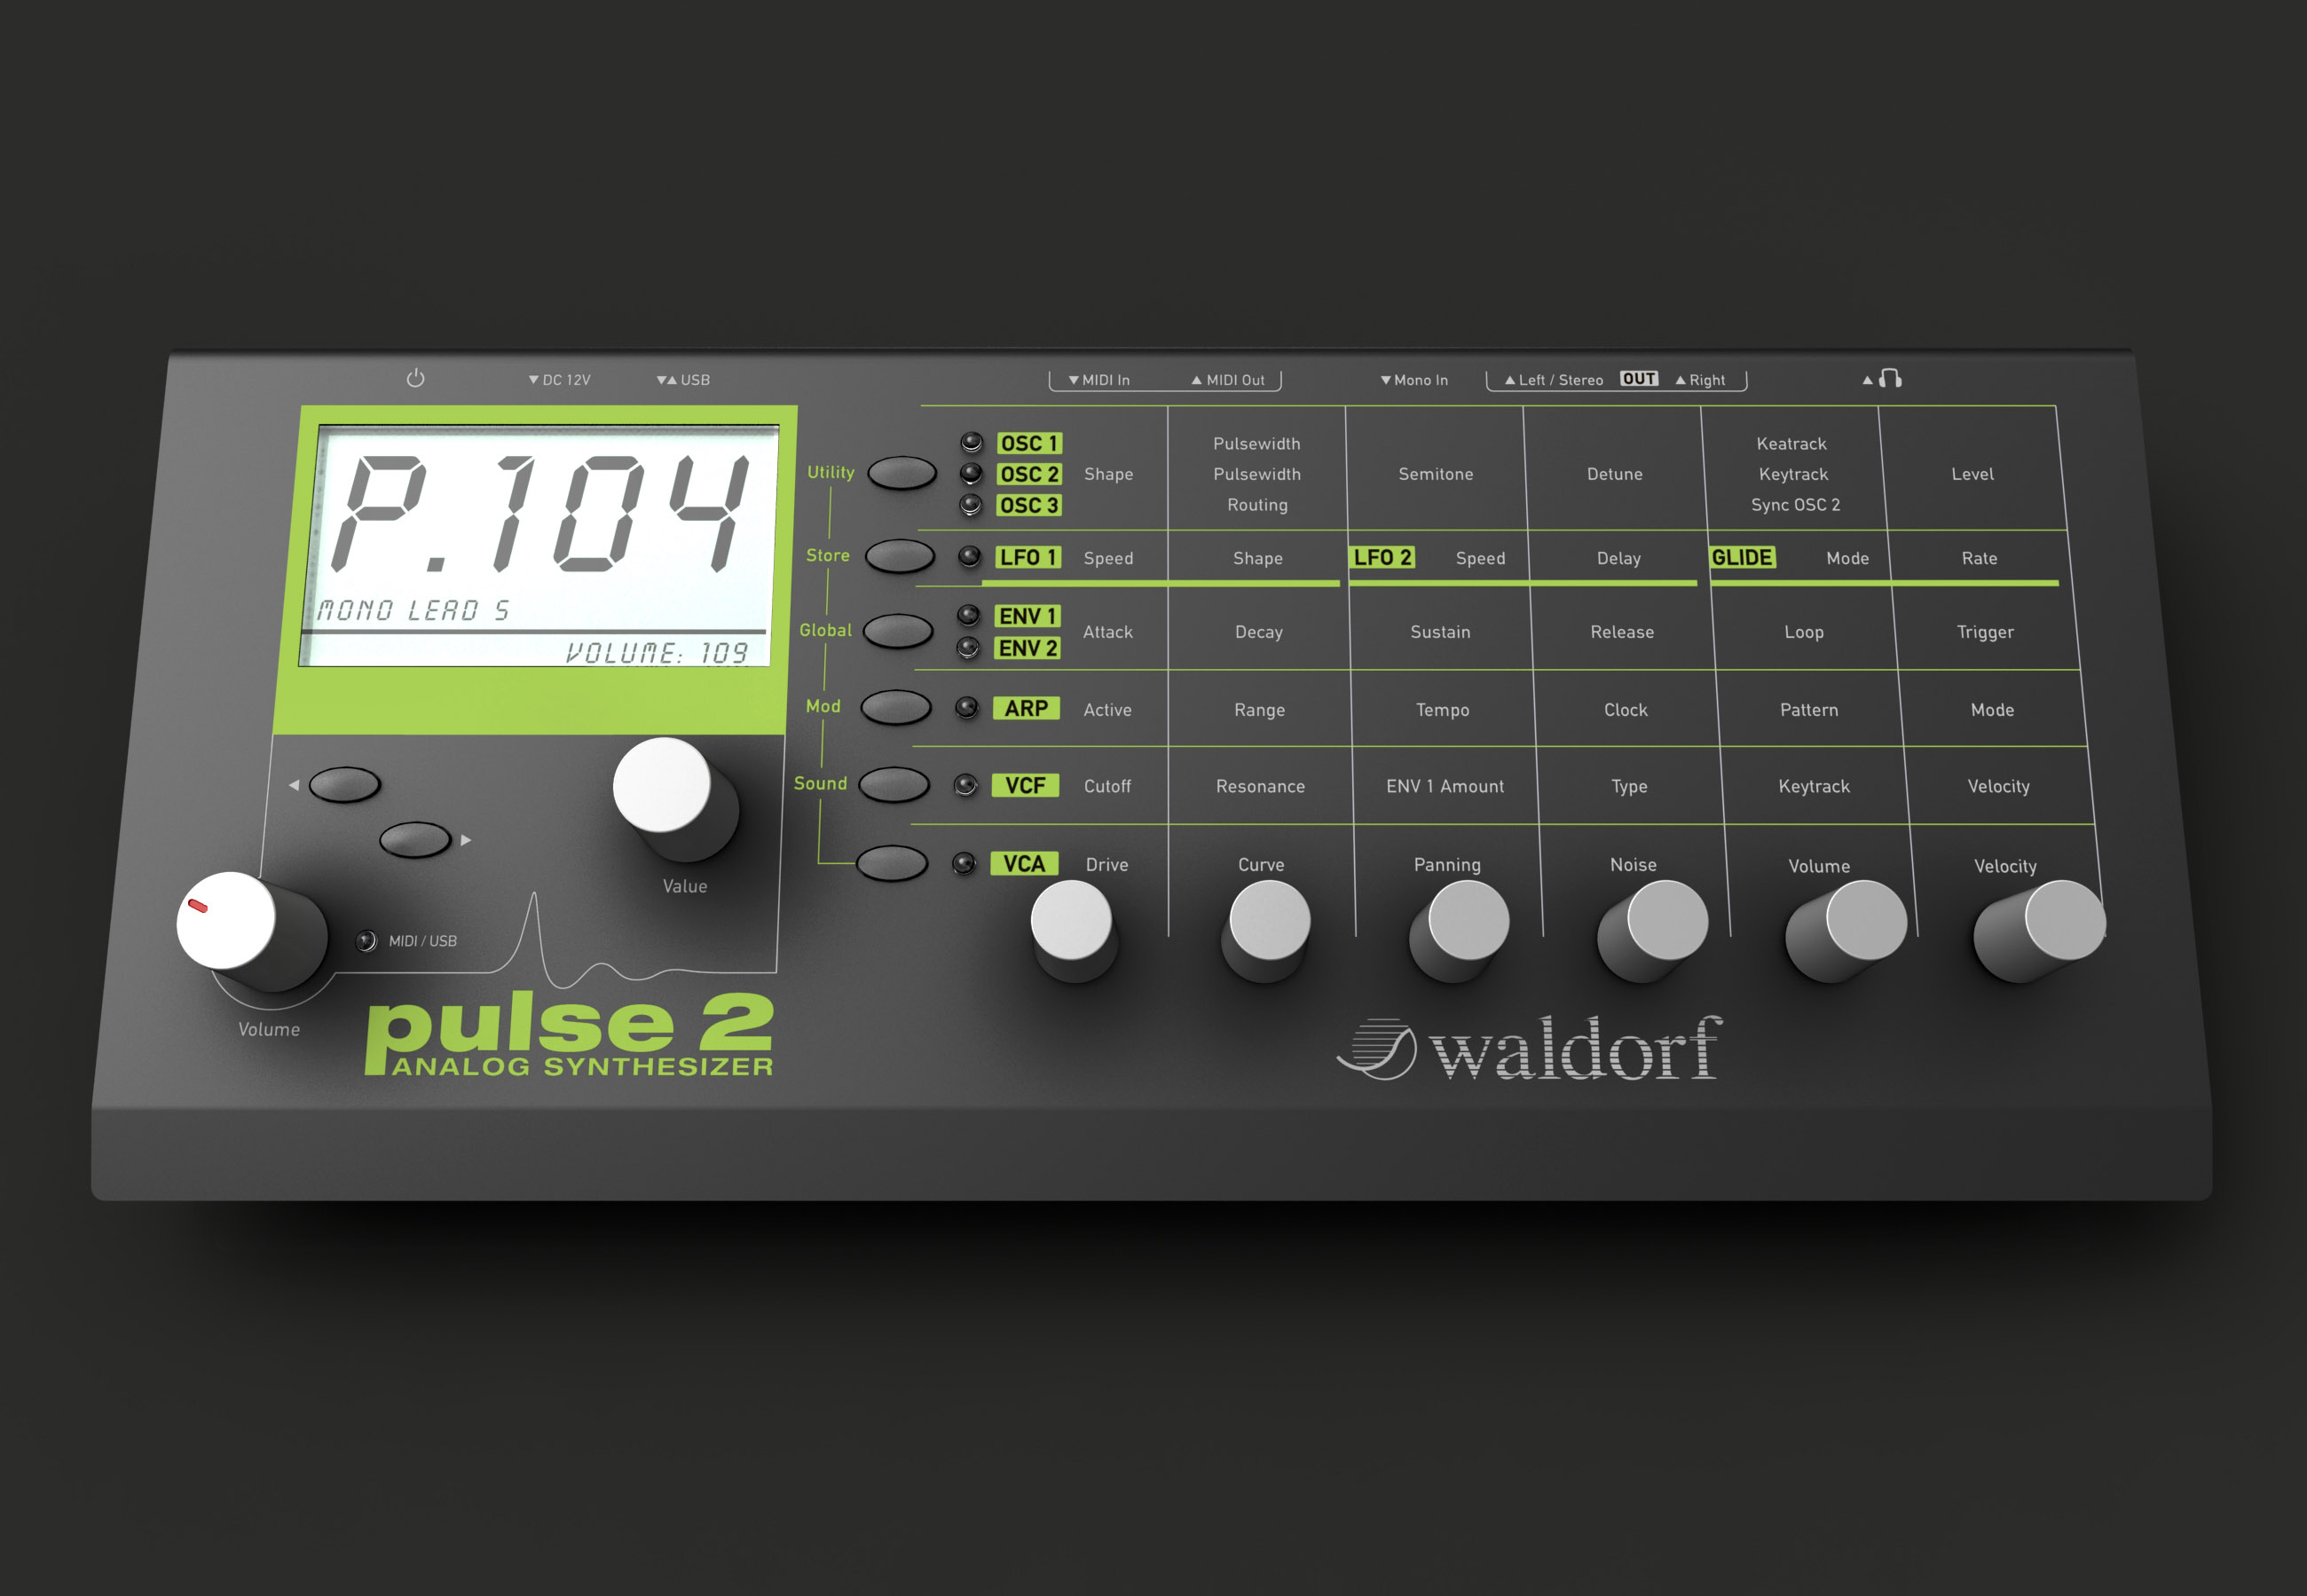 And the bleep goes on! Waldorf Pulse 2